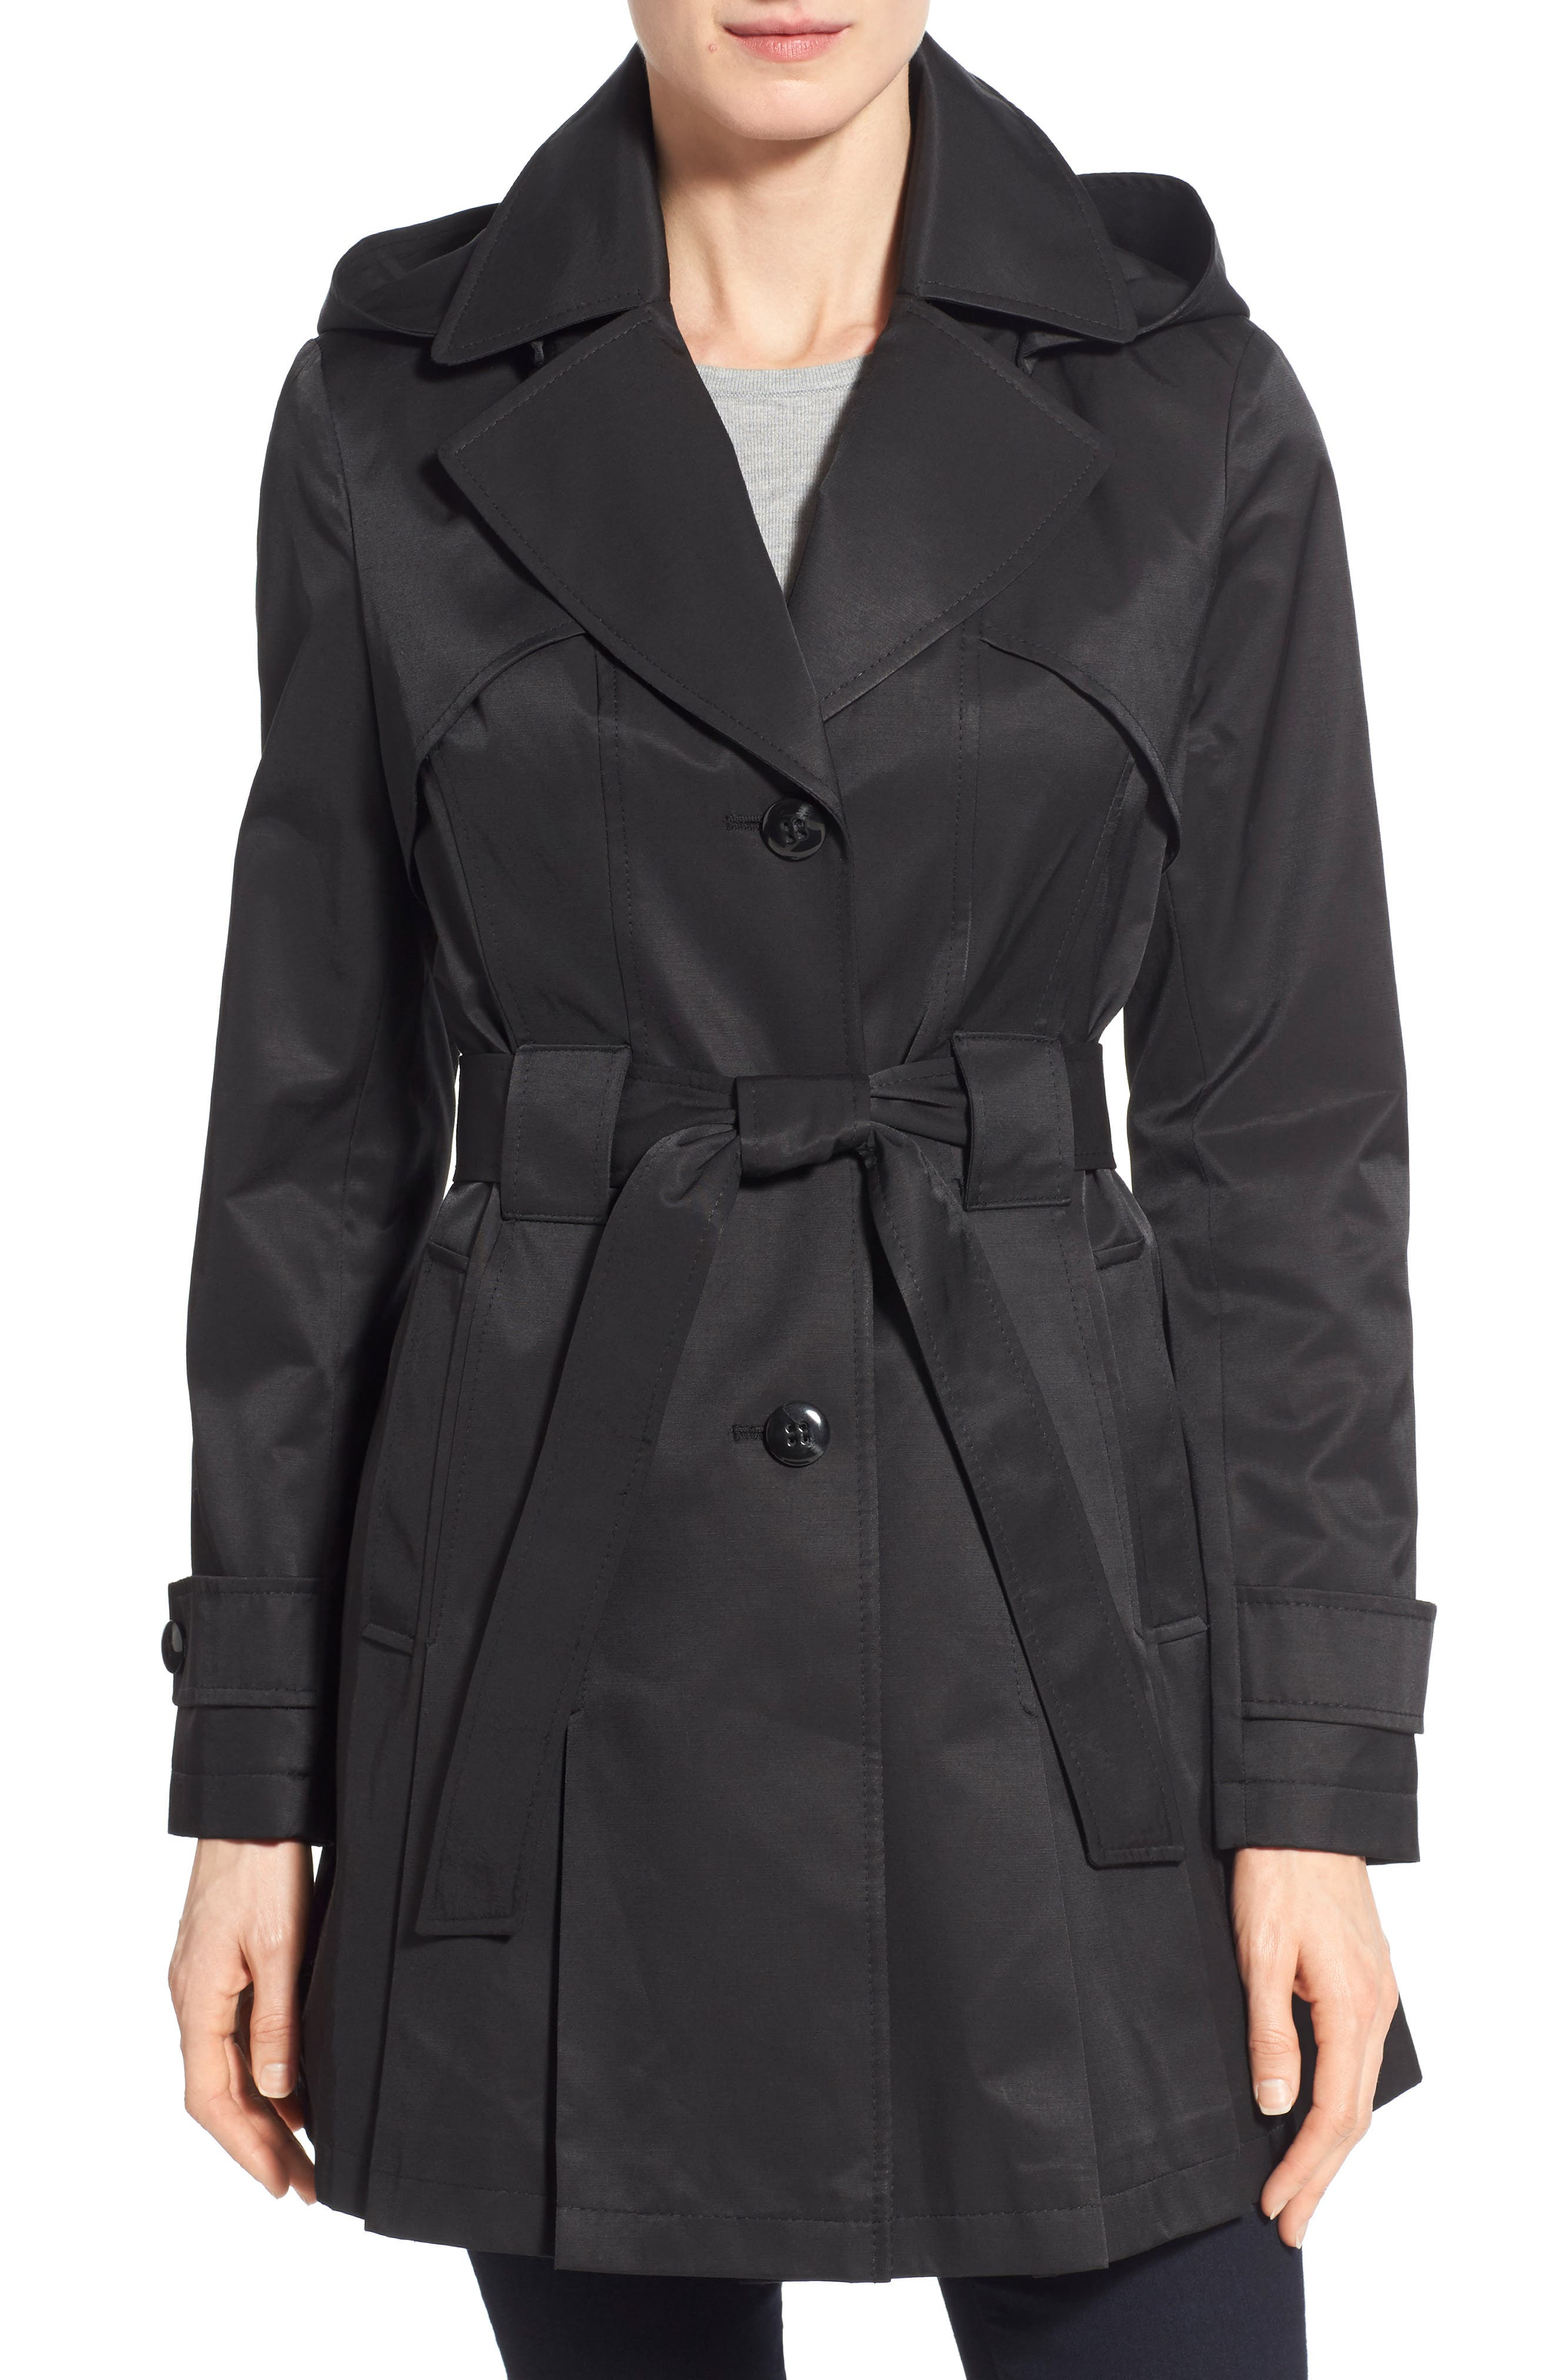 'Scarpa' Hooded Single Breasted Trench Coat,                             Alternate thumbnail 11, color,